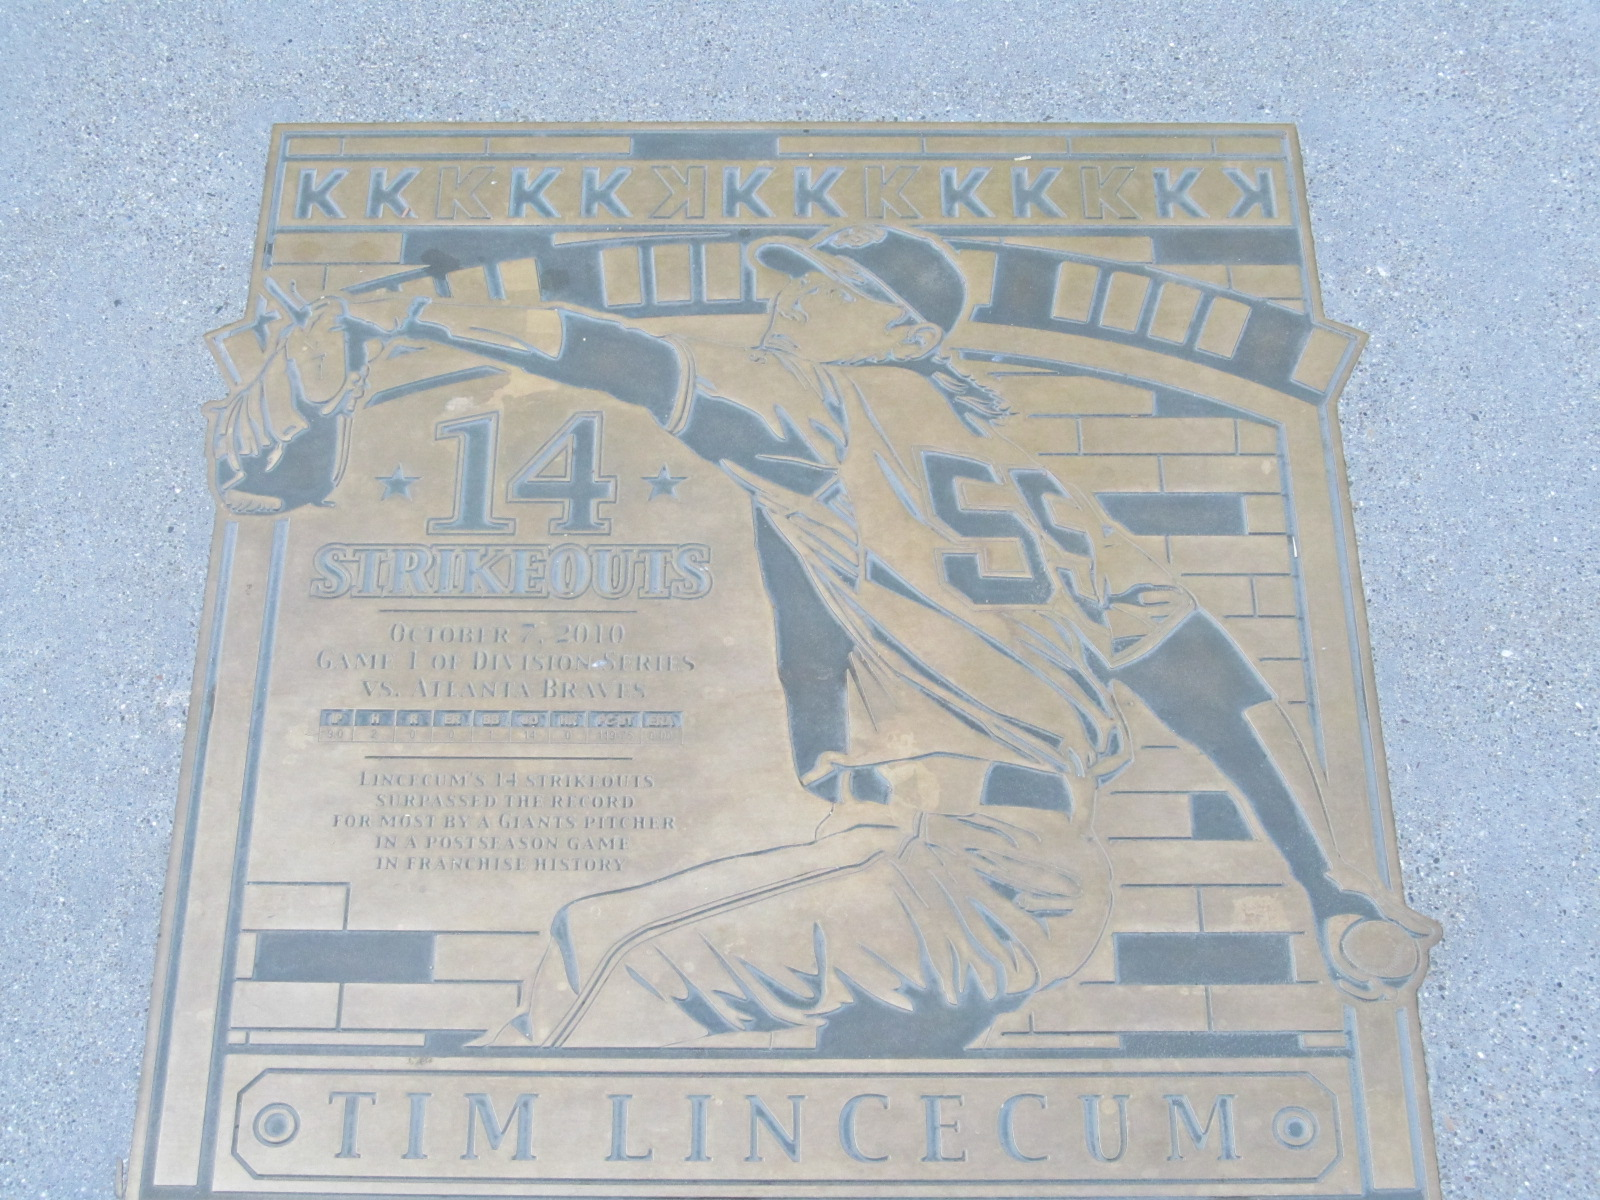 Tim Linecum 2010 NLDS 14 Strikeout Plaque